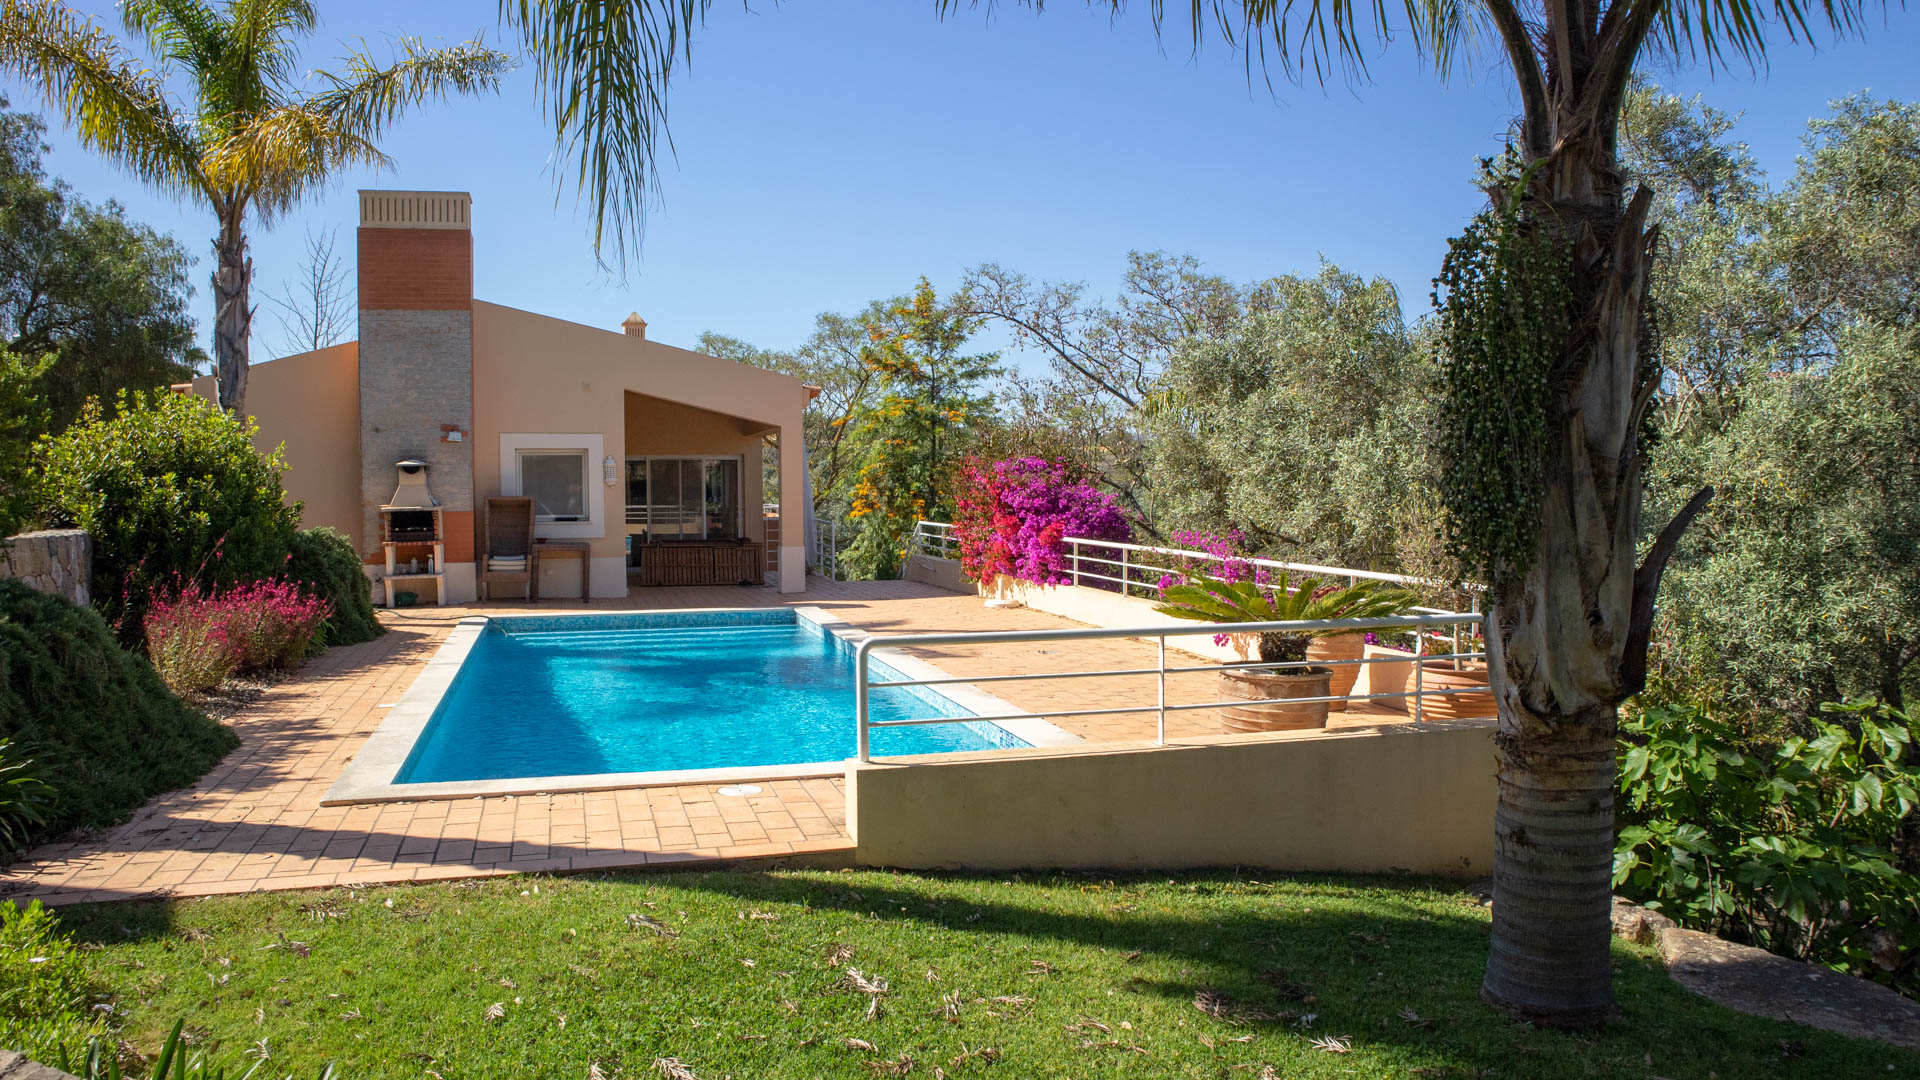 Three Bedroom Villa with private pool in Lagoa | PCG1452 Villa with 3 bedrooms and 4 bathrooms. Has its own private pool, set in mature gardens. Property has carport and driveway parking.